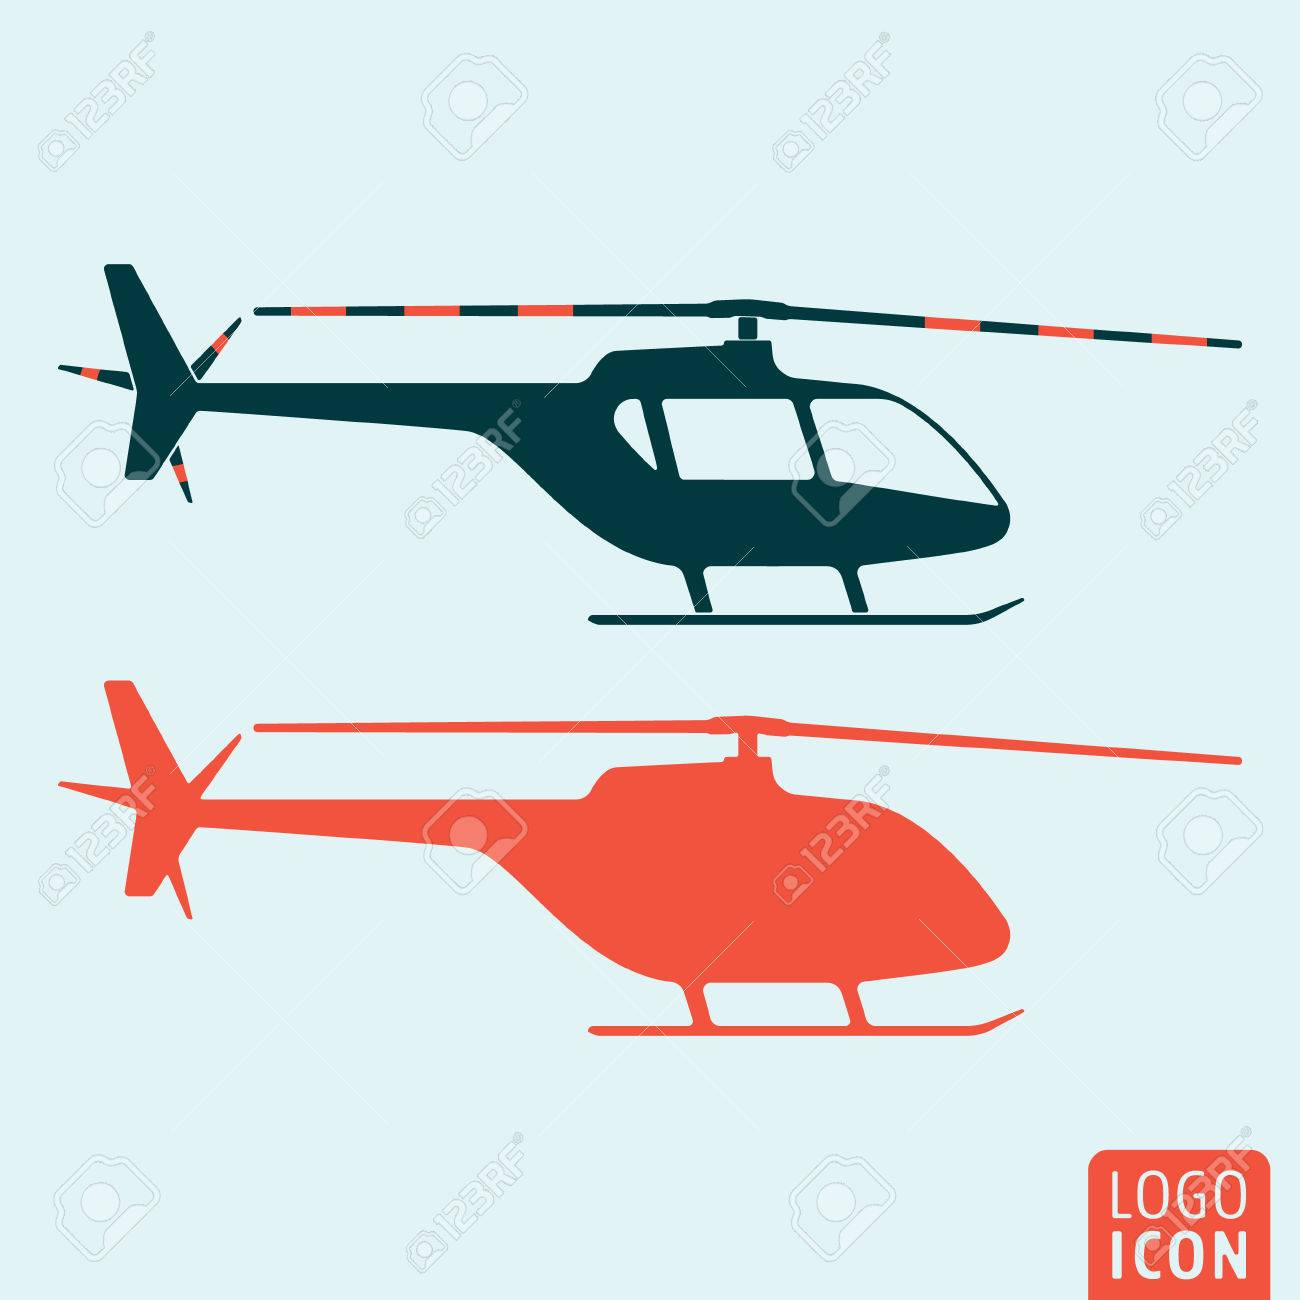 helicopter icon helicopter logo helicopter symbol silhouette